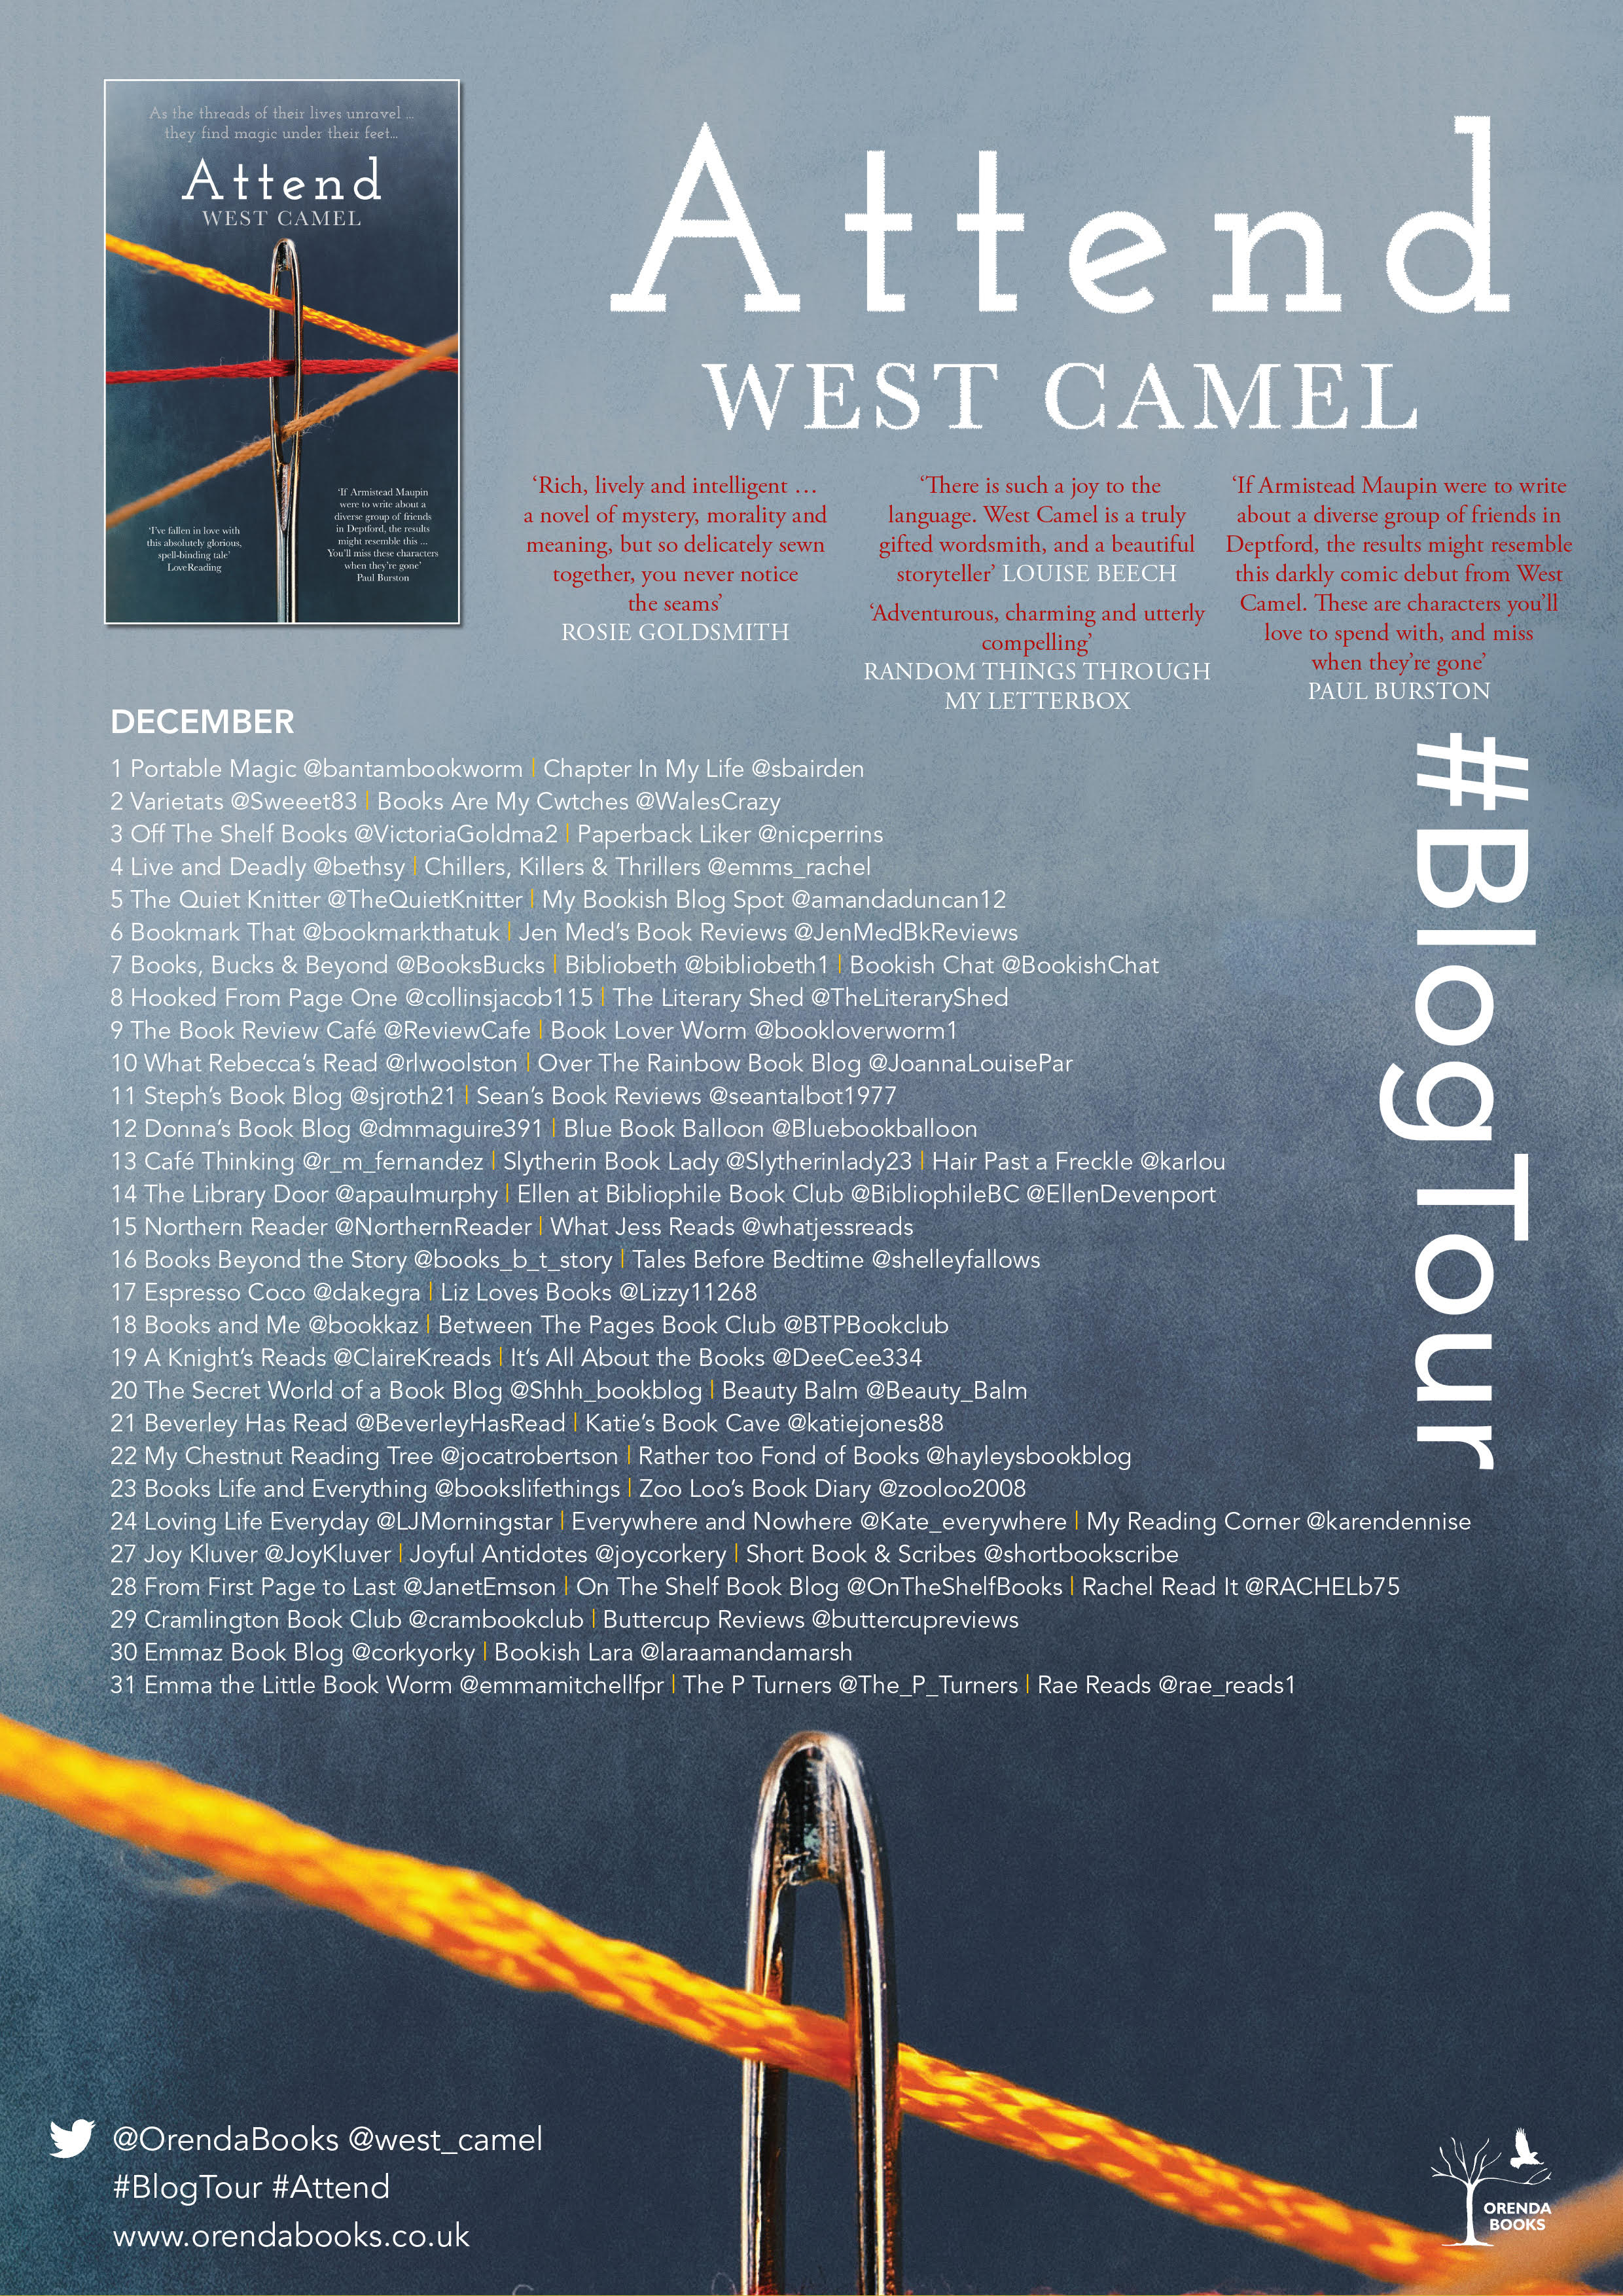 A poster showing the names of all the bloggers posting about this book and the dates on which they will be doing so.